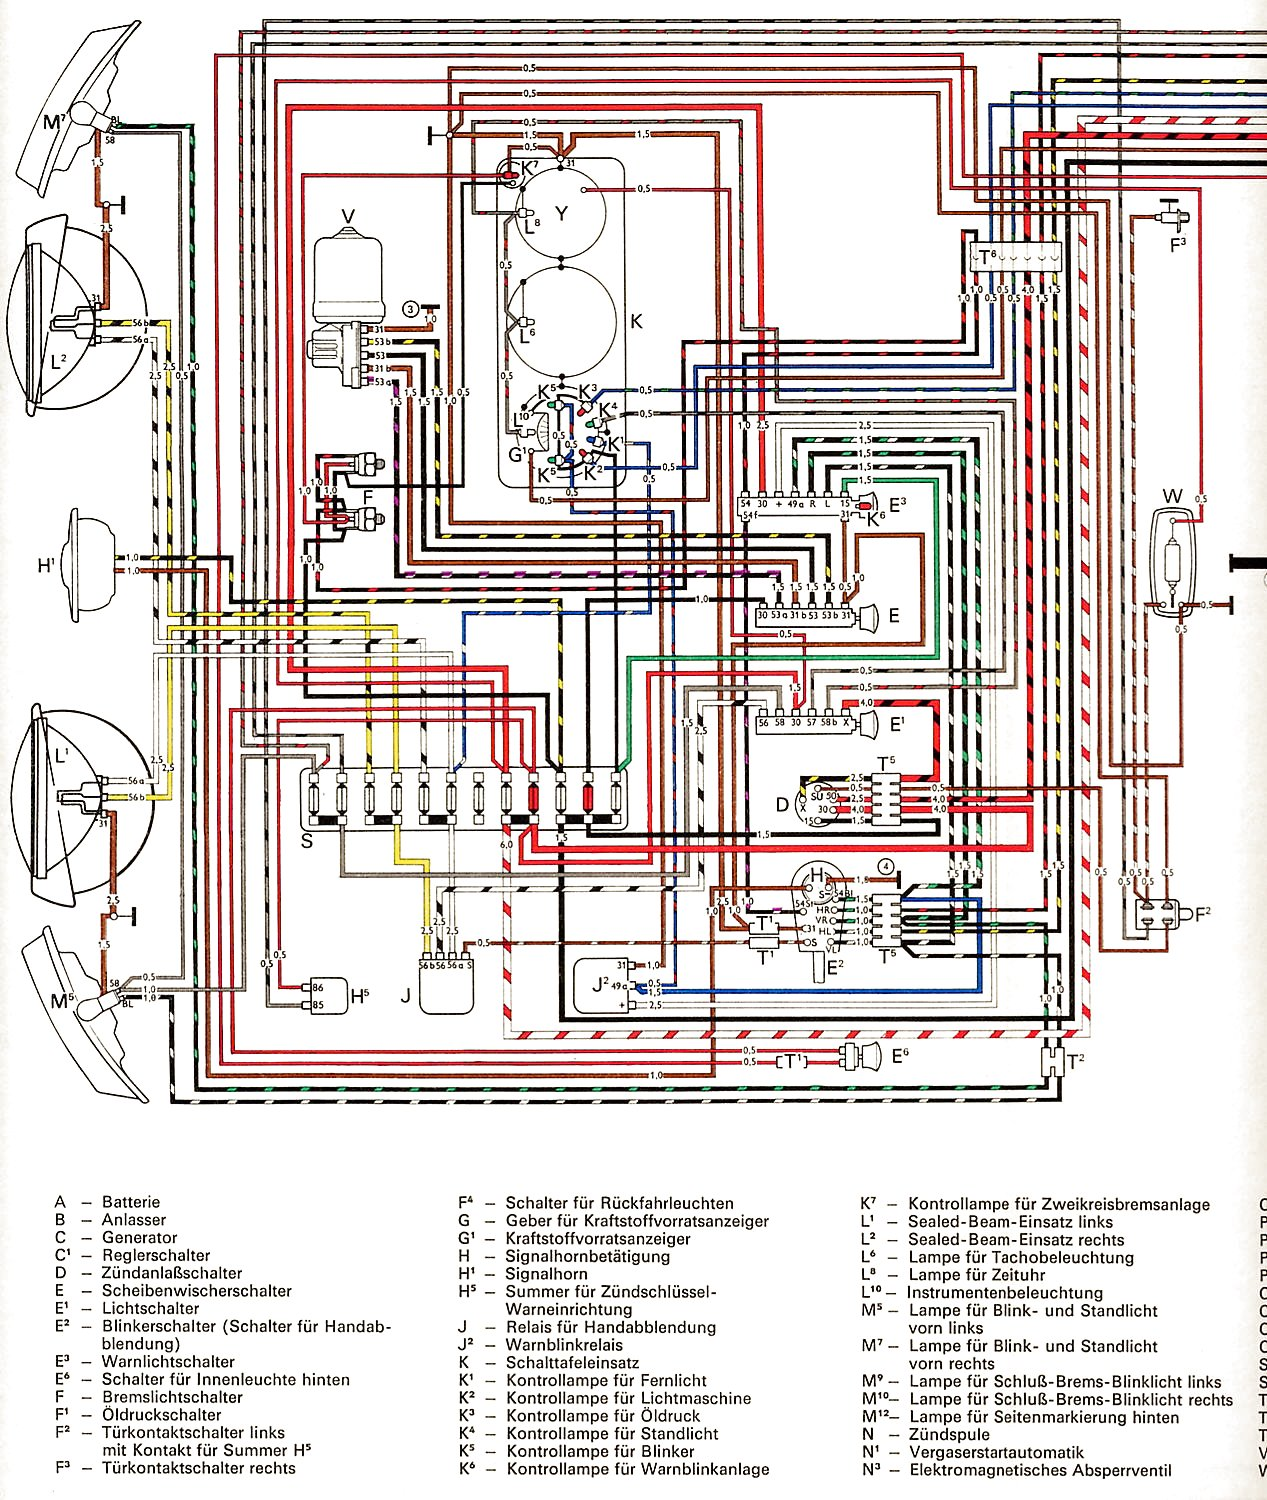 2000 Vw Beetle Fuse Diagram Archive Of Automotive Wiring Jetta Electrical Schematics Rh Thyl Co Uk Panel Volkswagen